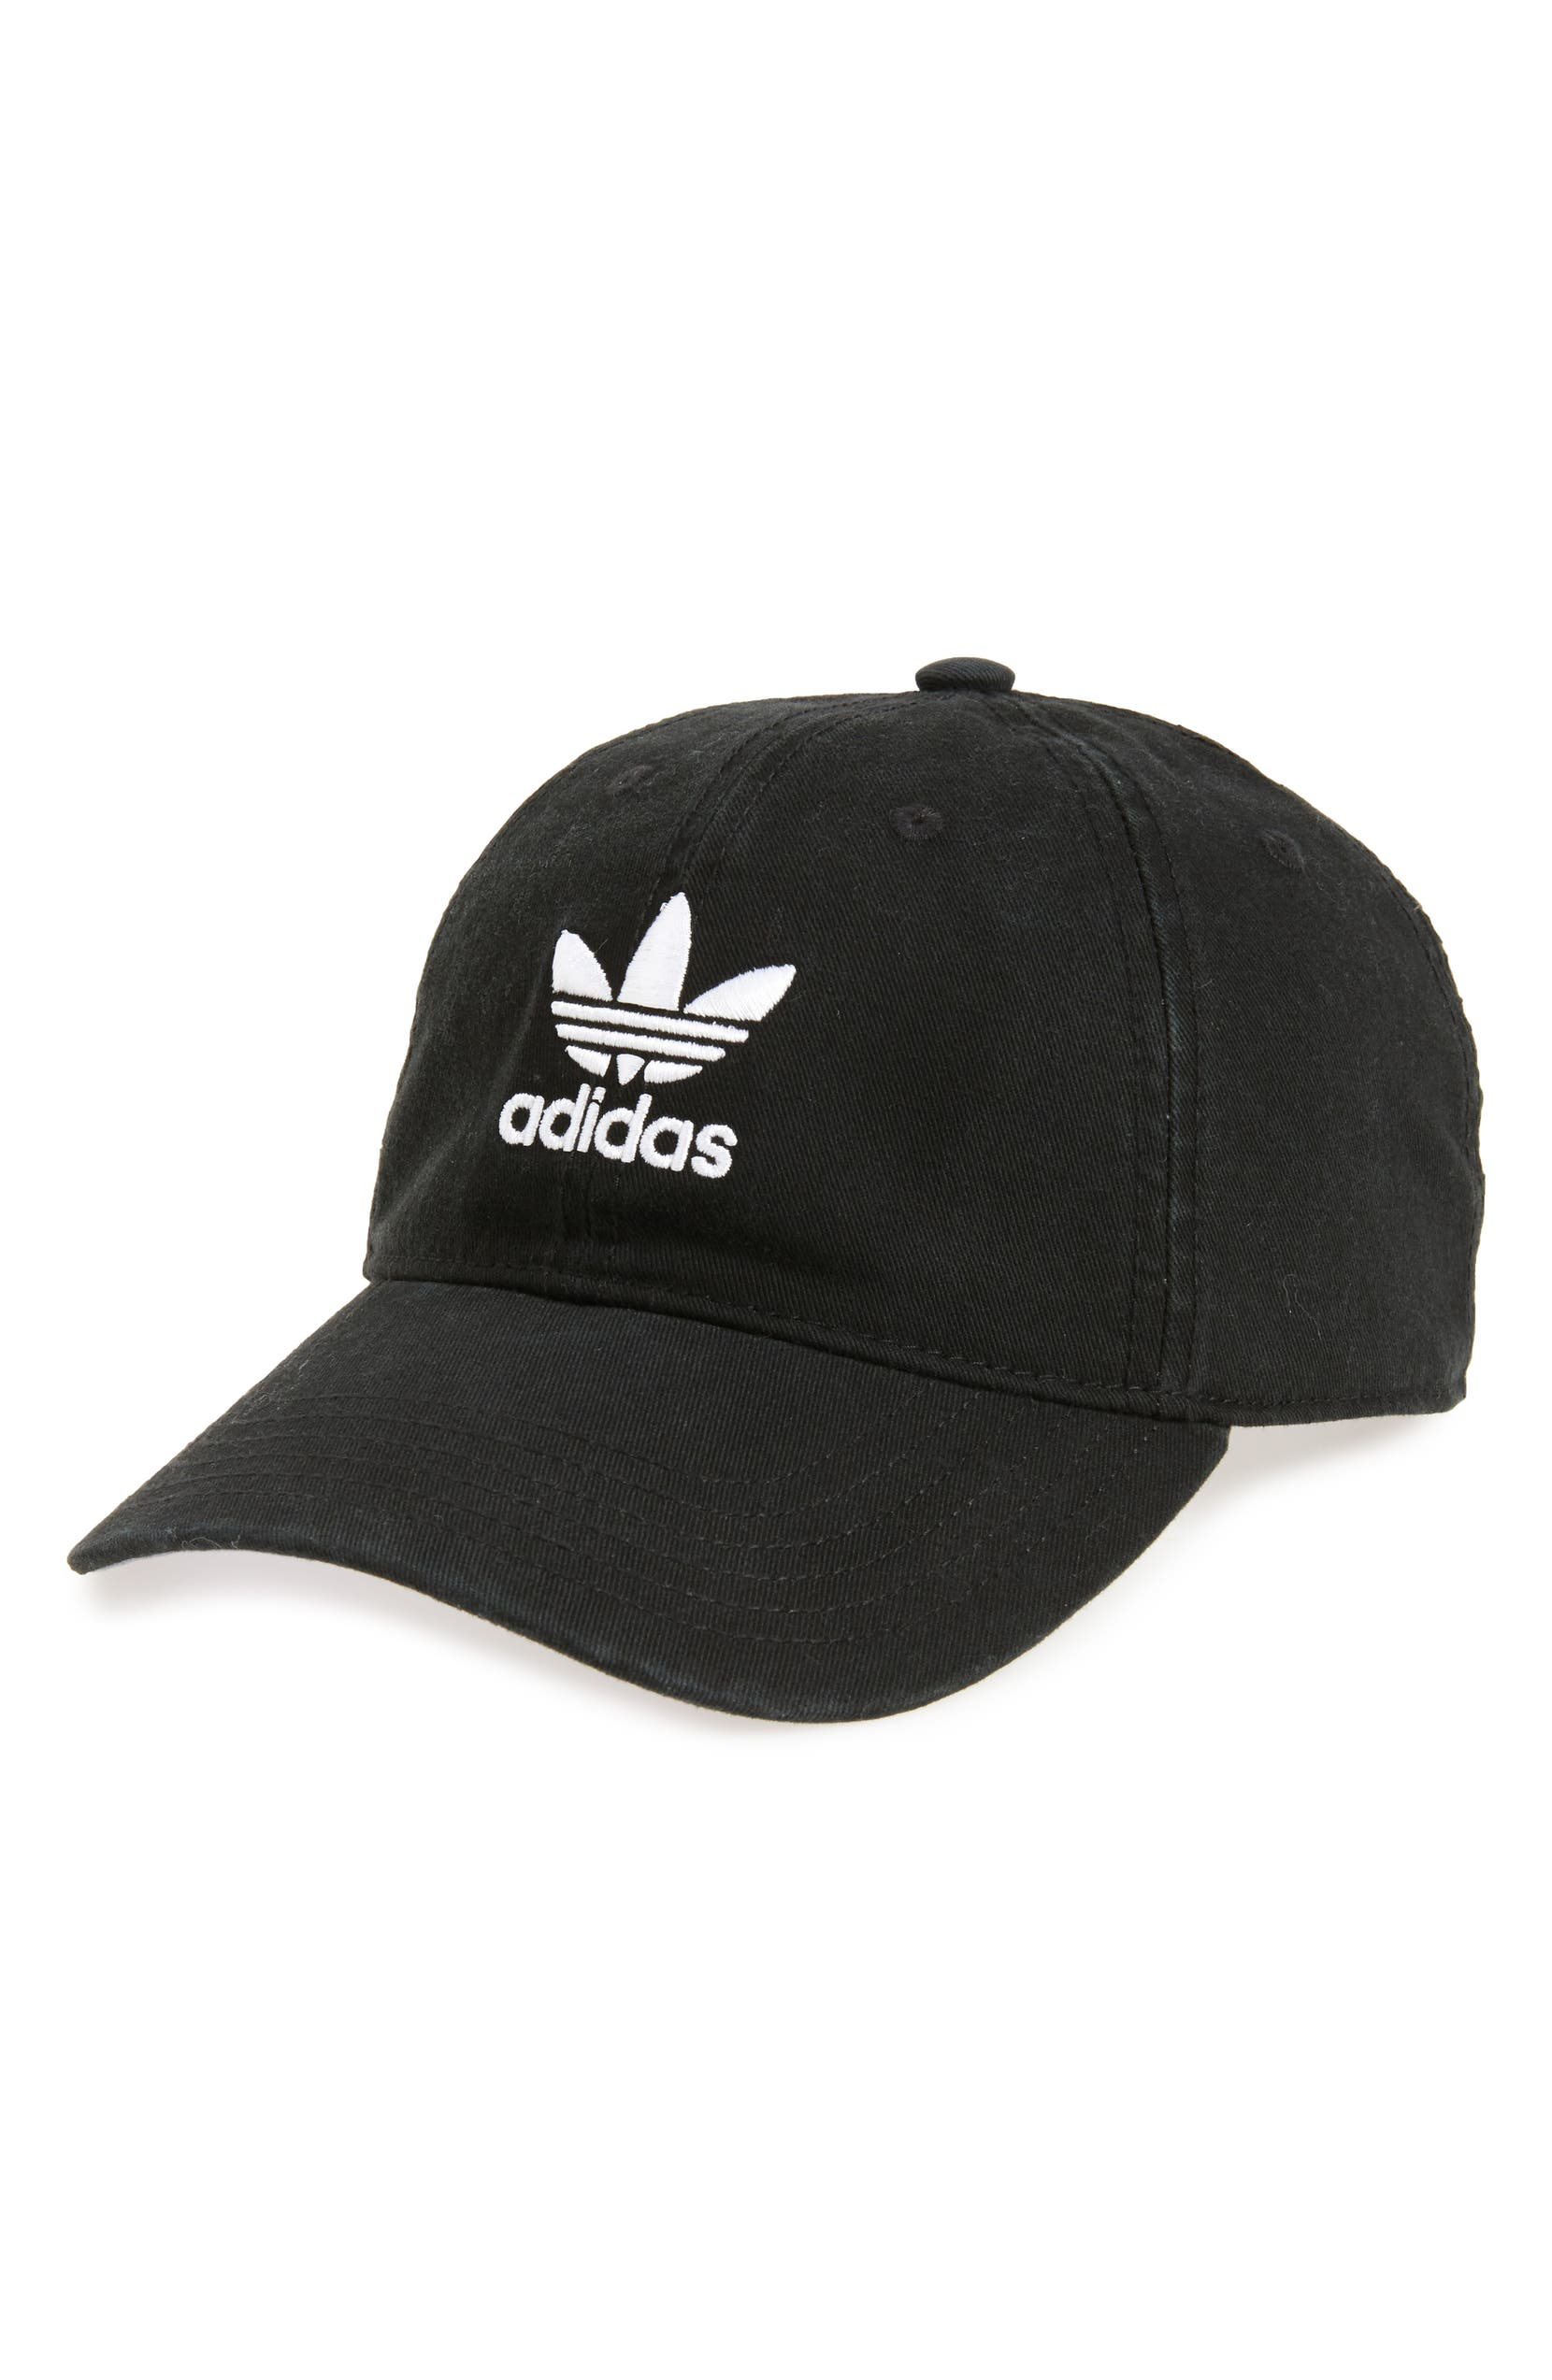 adidas Originals Relaxed Baseball Cap  121f5aea414